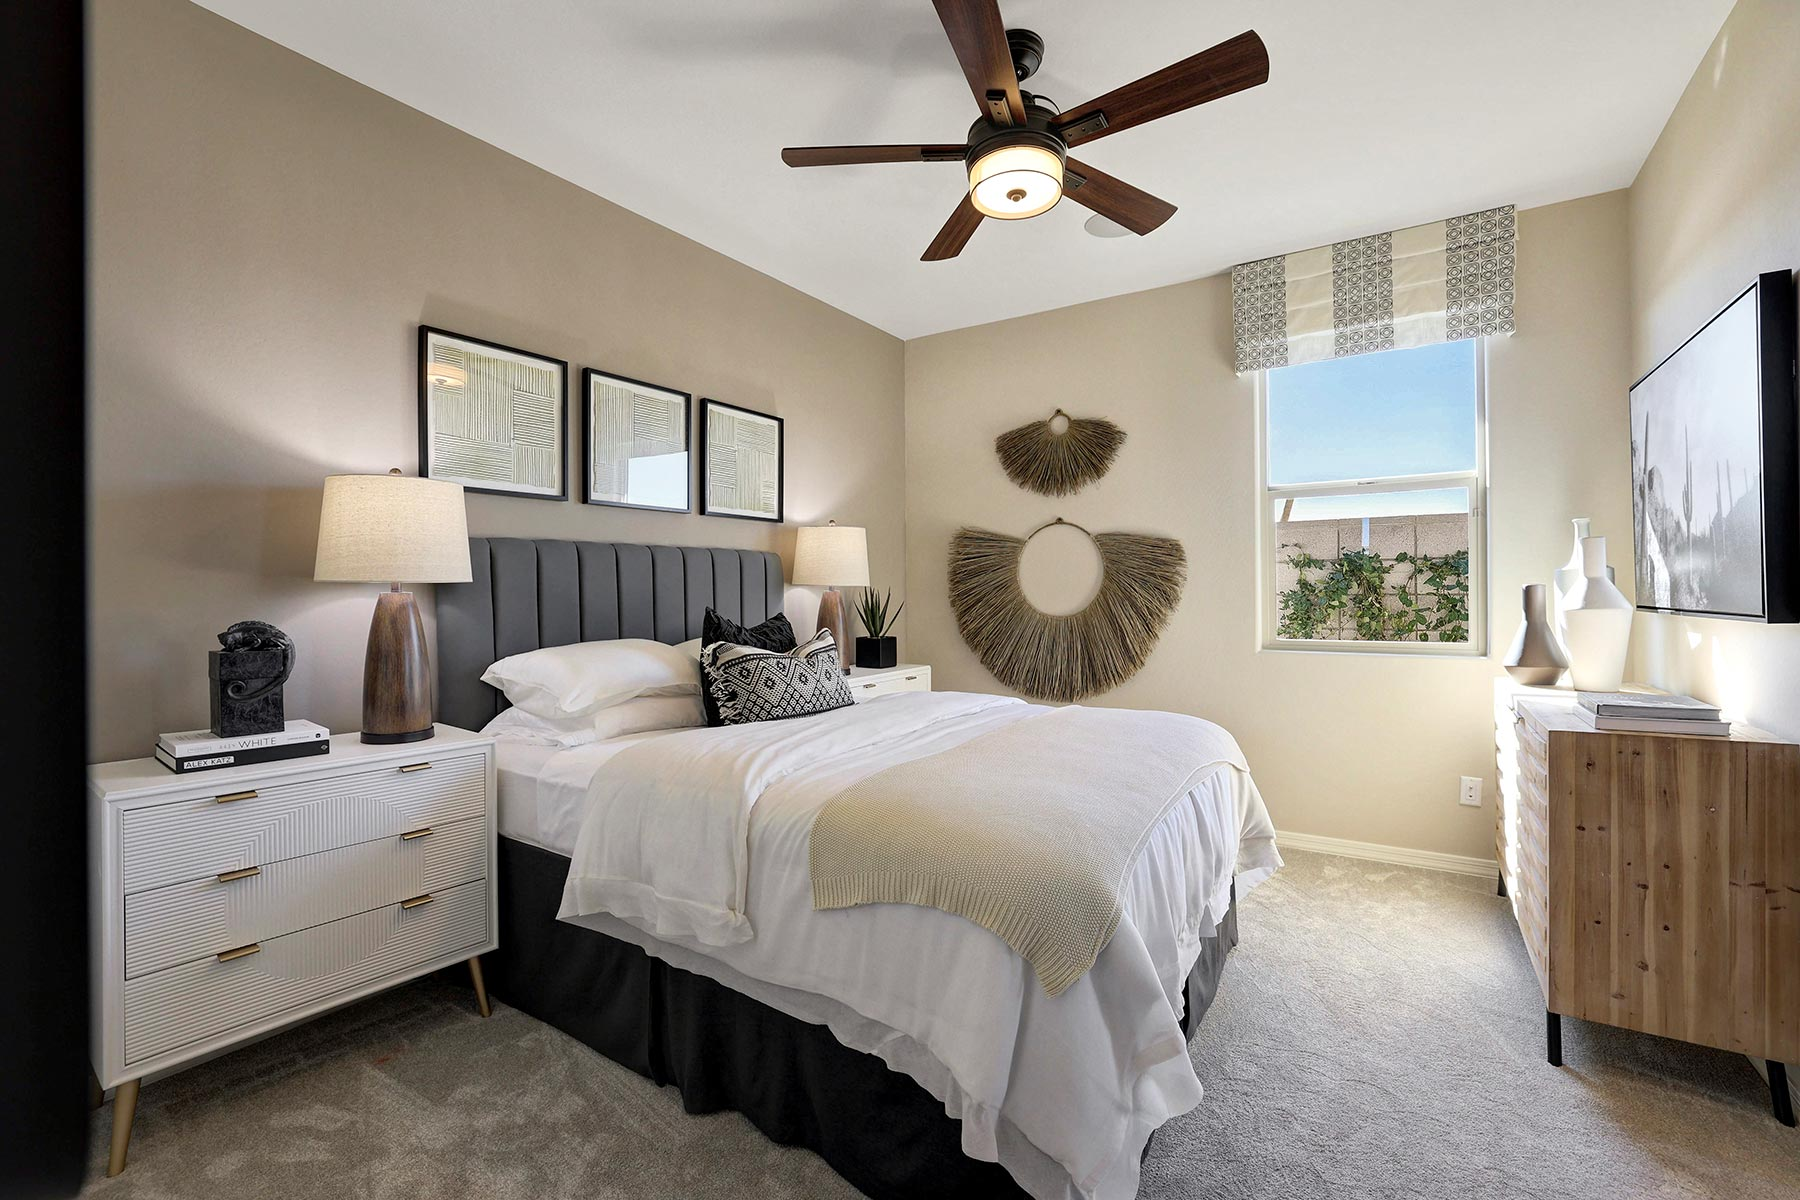 Bellwood Plan Bedroom at Azure Canyon in Goodyear Arizona by Mattamy Homes